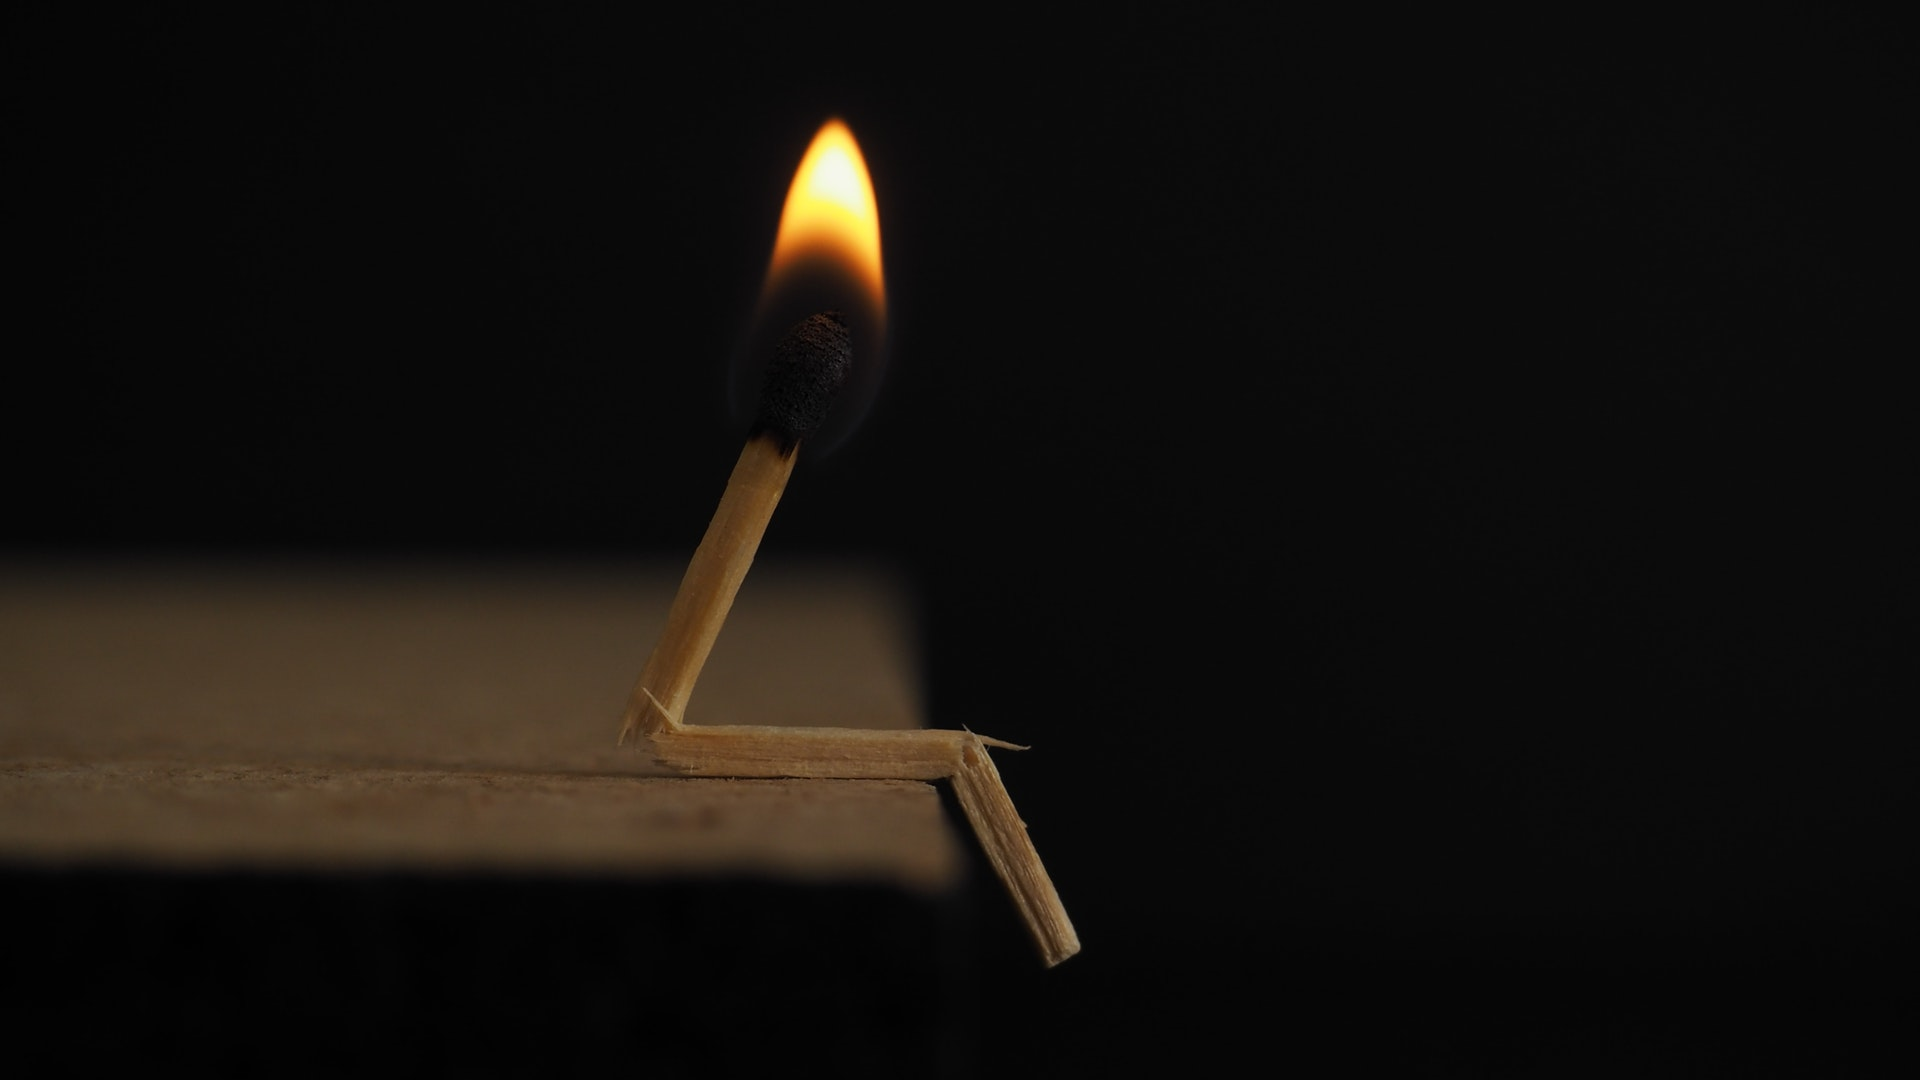 A match broken into a sitting position with its sulfer head burning. Kind of looks like a piano player that has warmed up before starting to play.